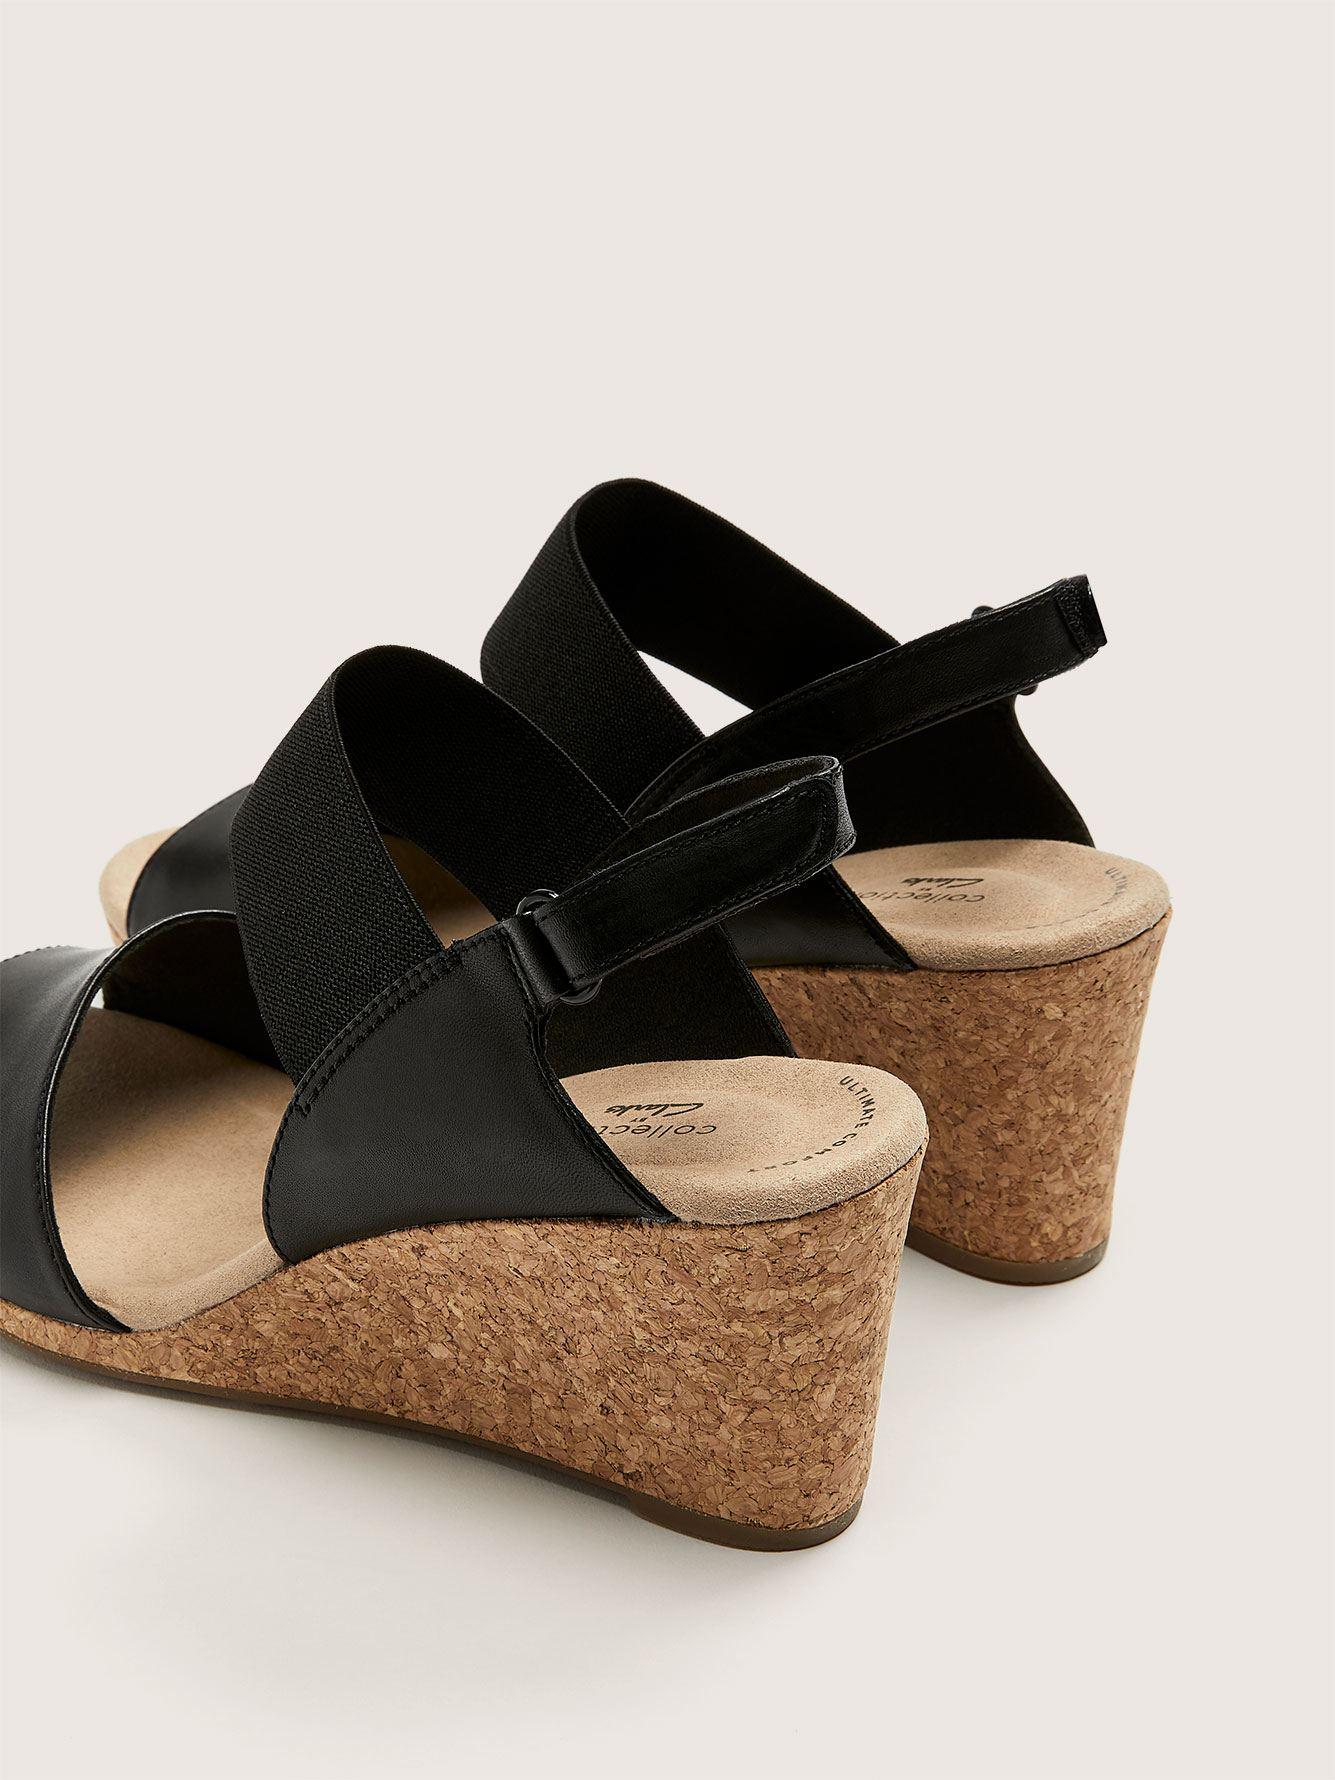 Wide Lafley Lily Wedge Sandal - Clarks